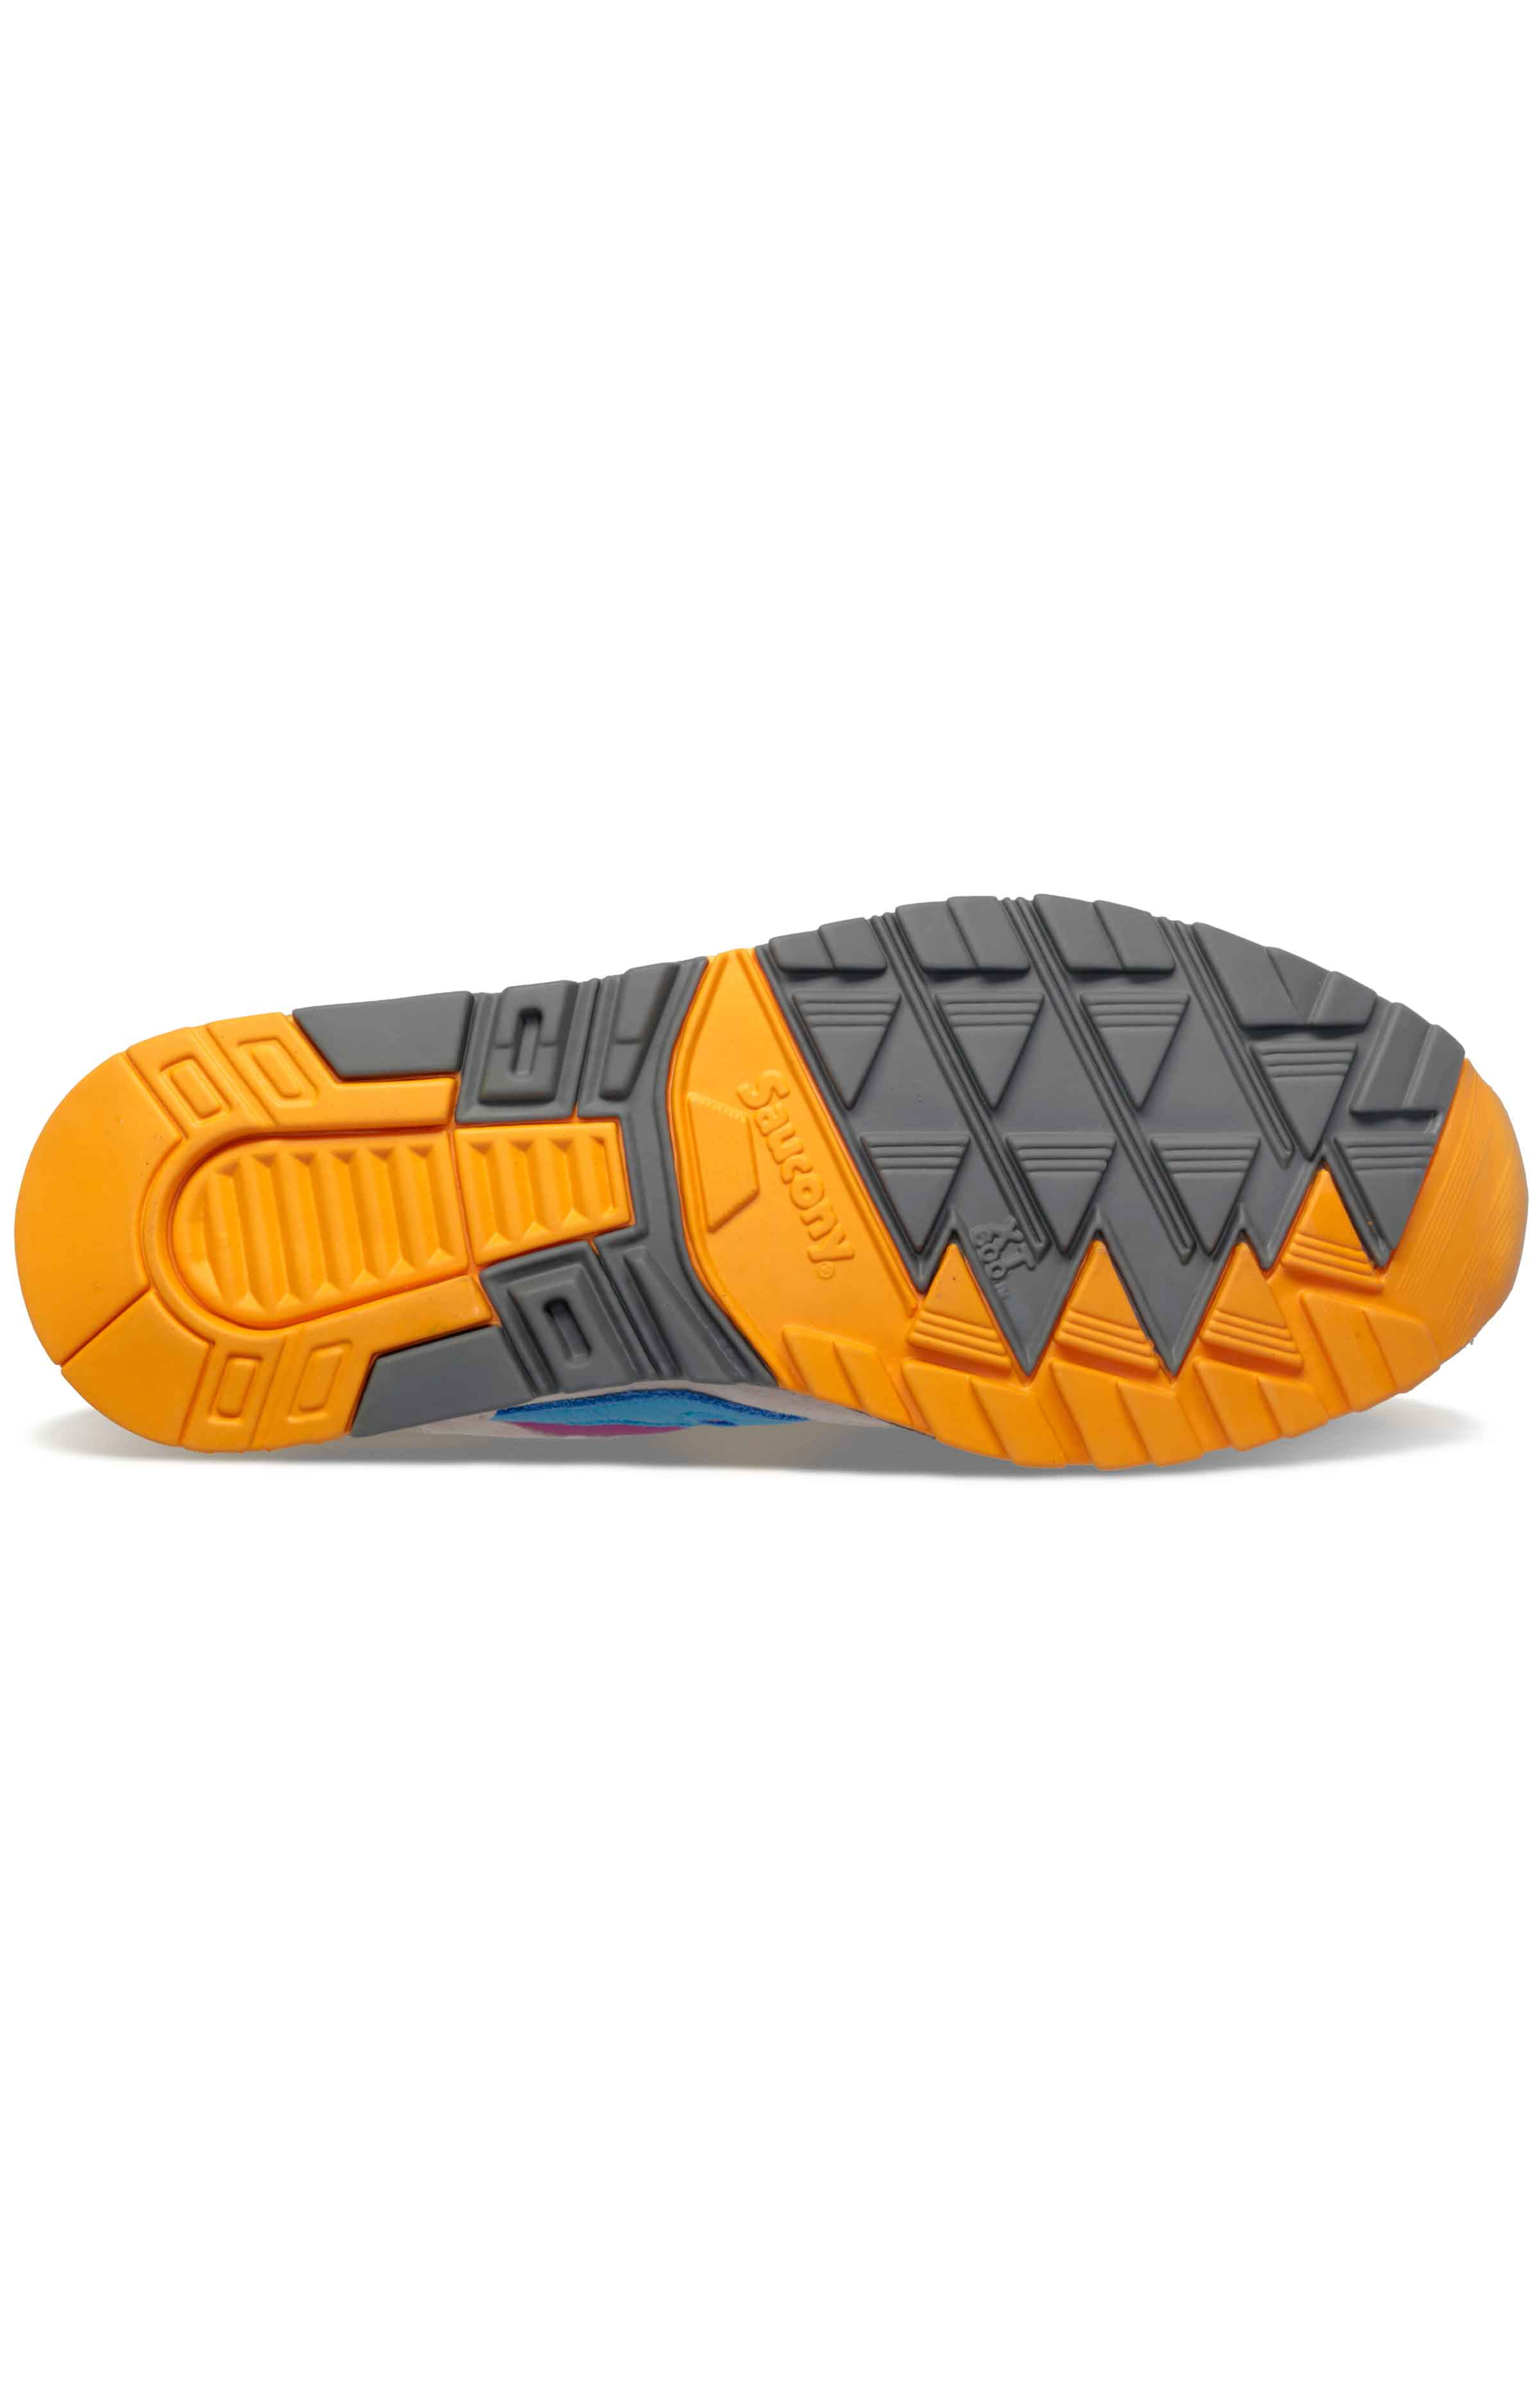 (S70559-2) Shadow 5000 Shoes - Astro/Air 4